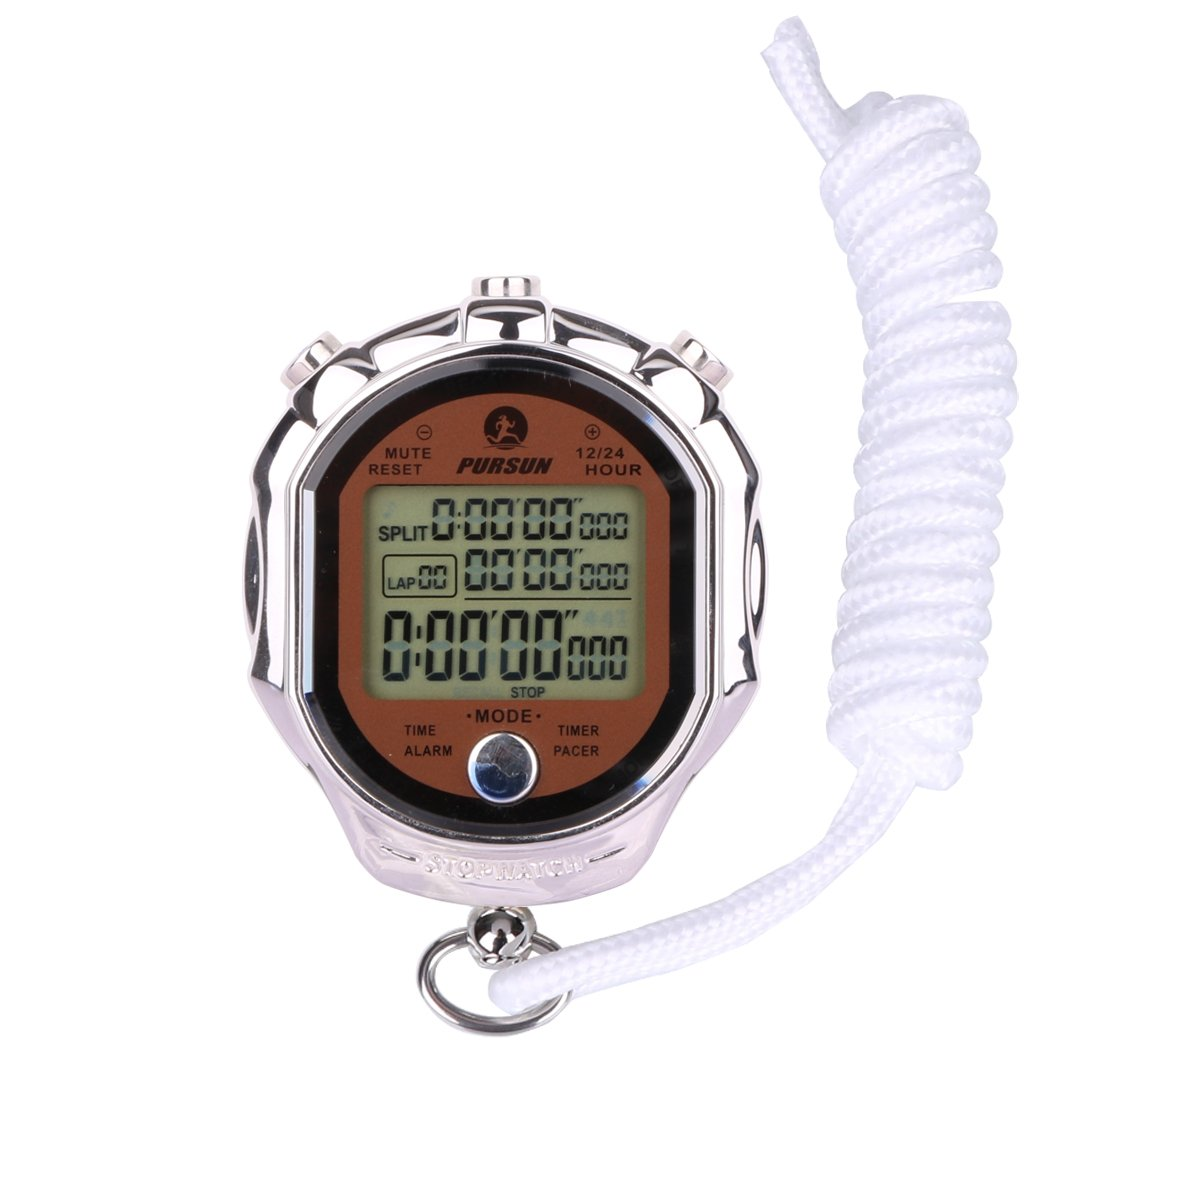 AIMILAR Stainless Steel Digital Sports Stopwatch Timer Alarm Clock Large Display and Button with Lanyard for Men Women Trainers Coaching Training by AIMILAR (Image #1)